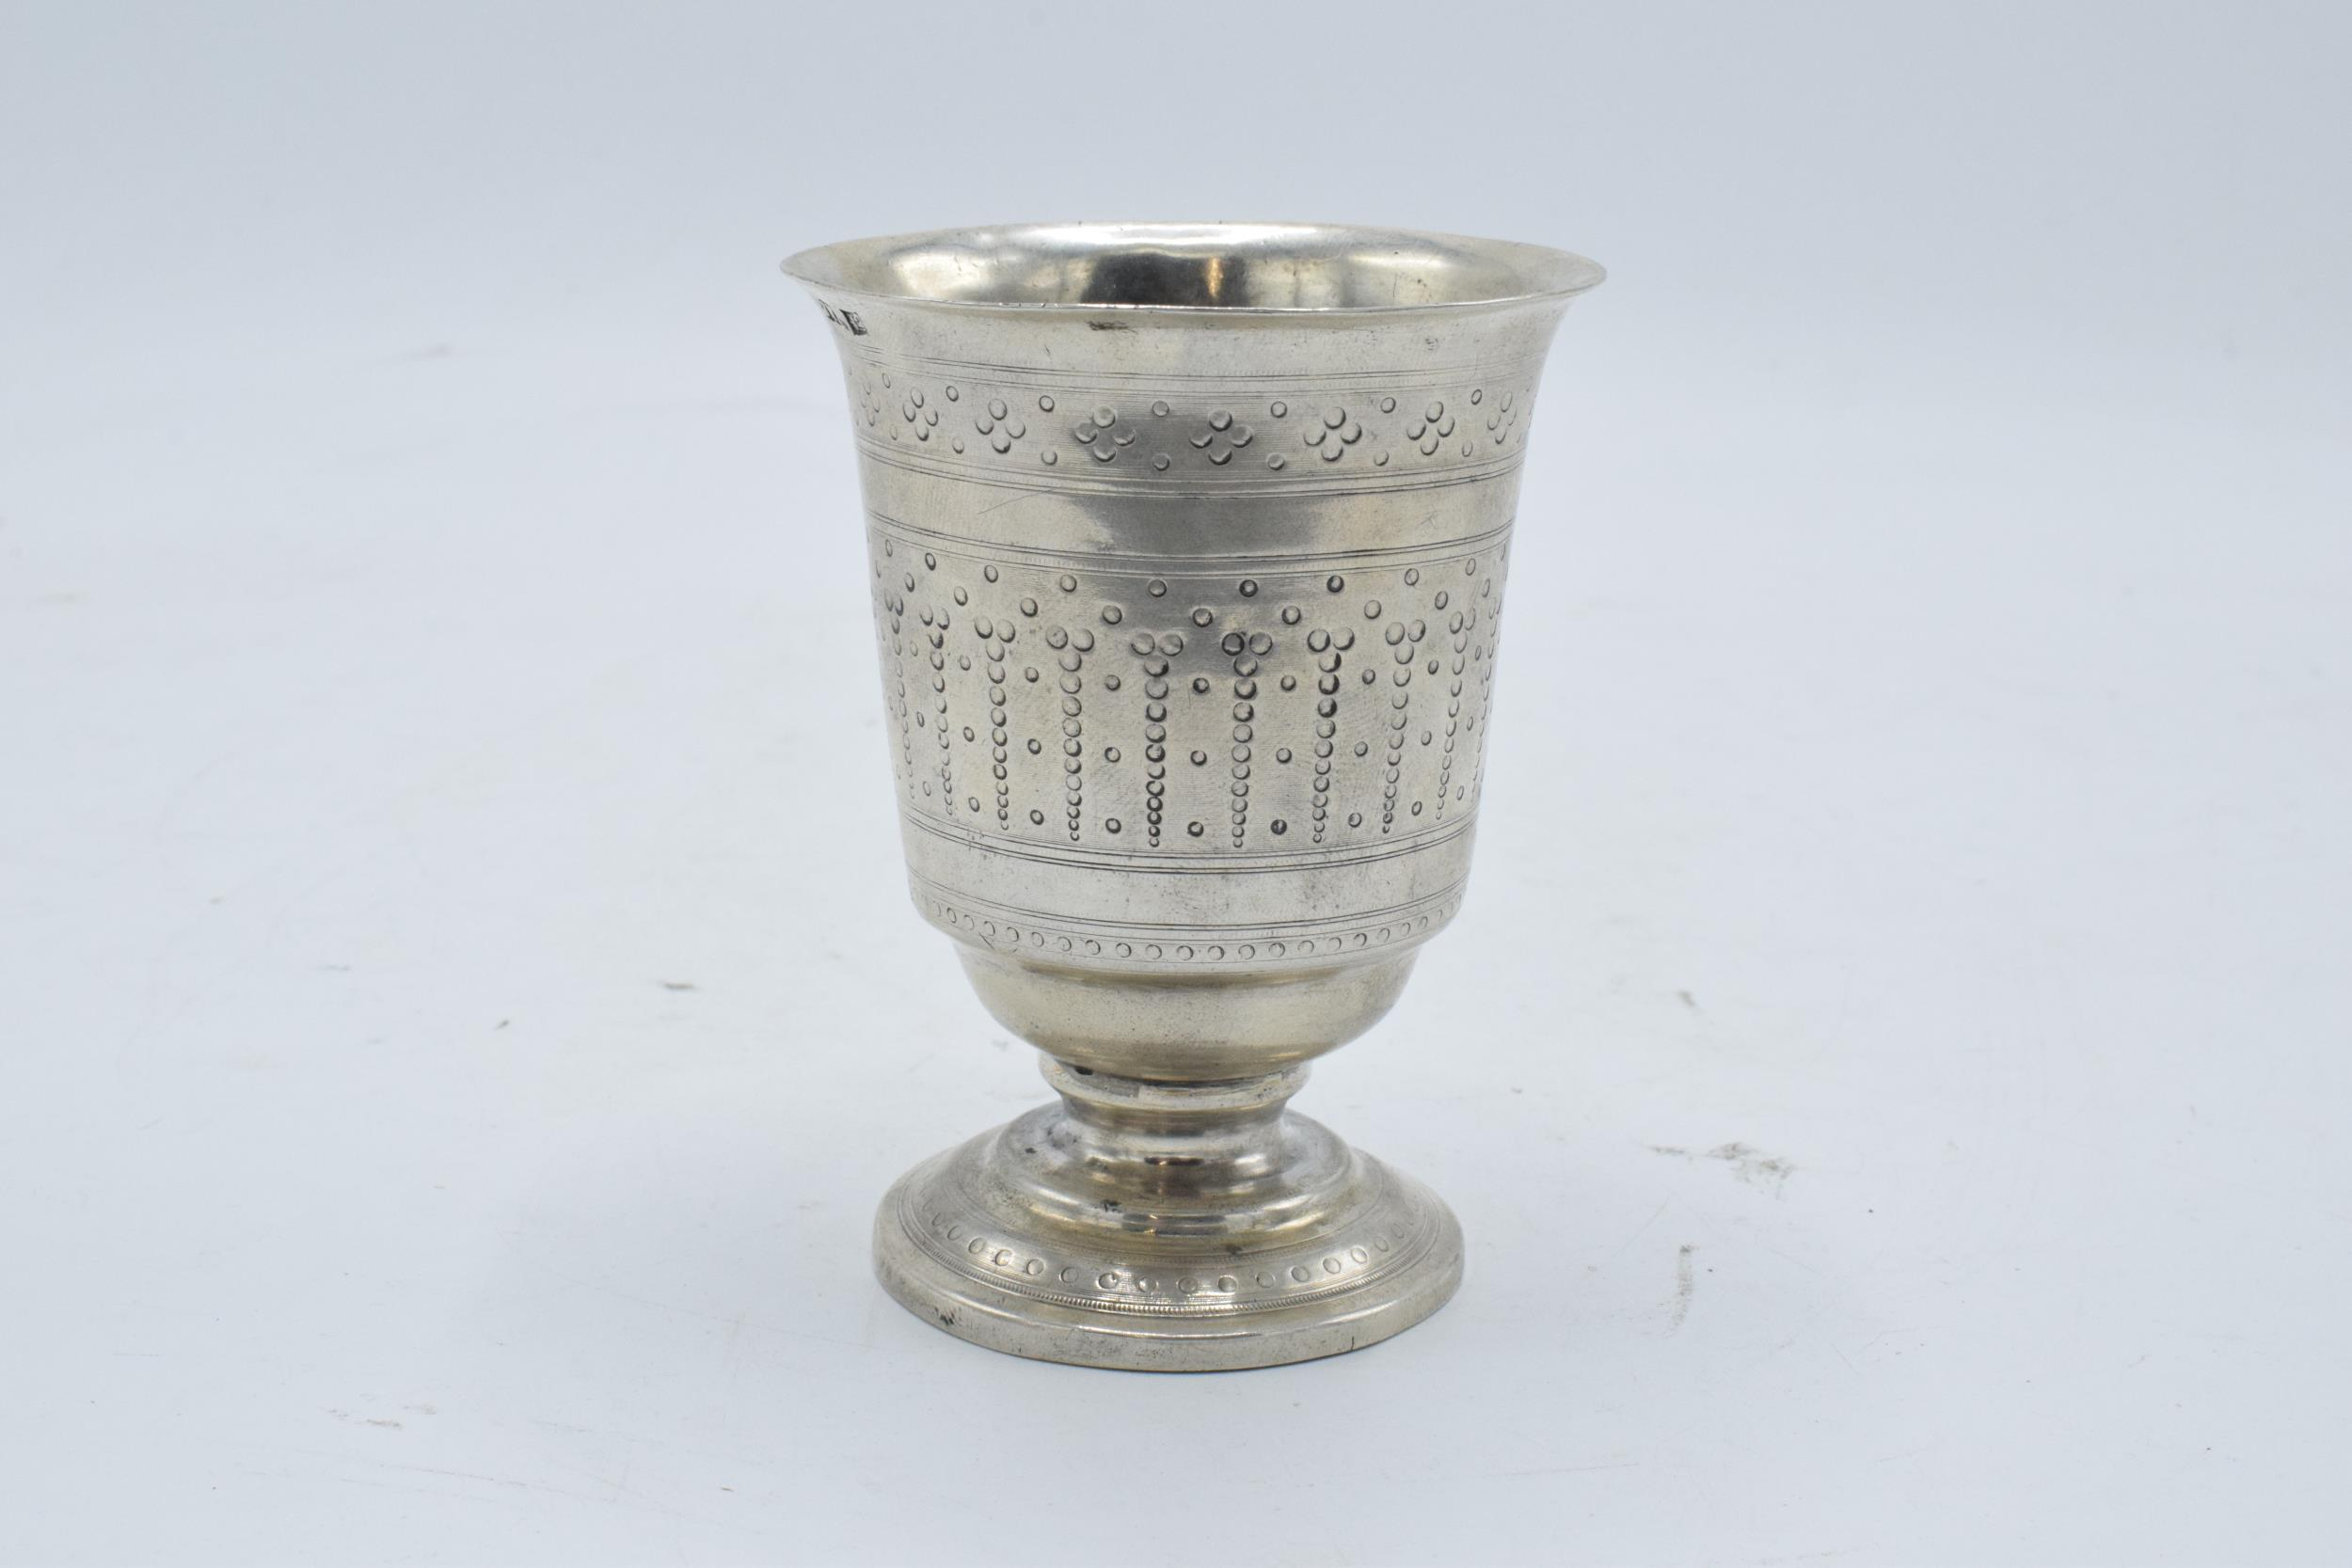 Continental silver footed beaker with engraved decoration. 9cm tall. 63.3 grams. - Image 3 of 5